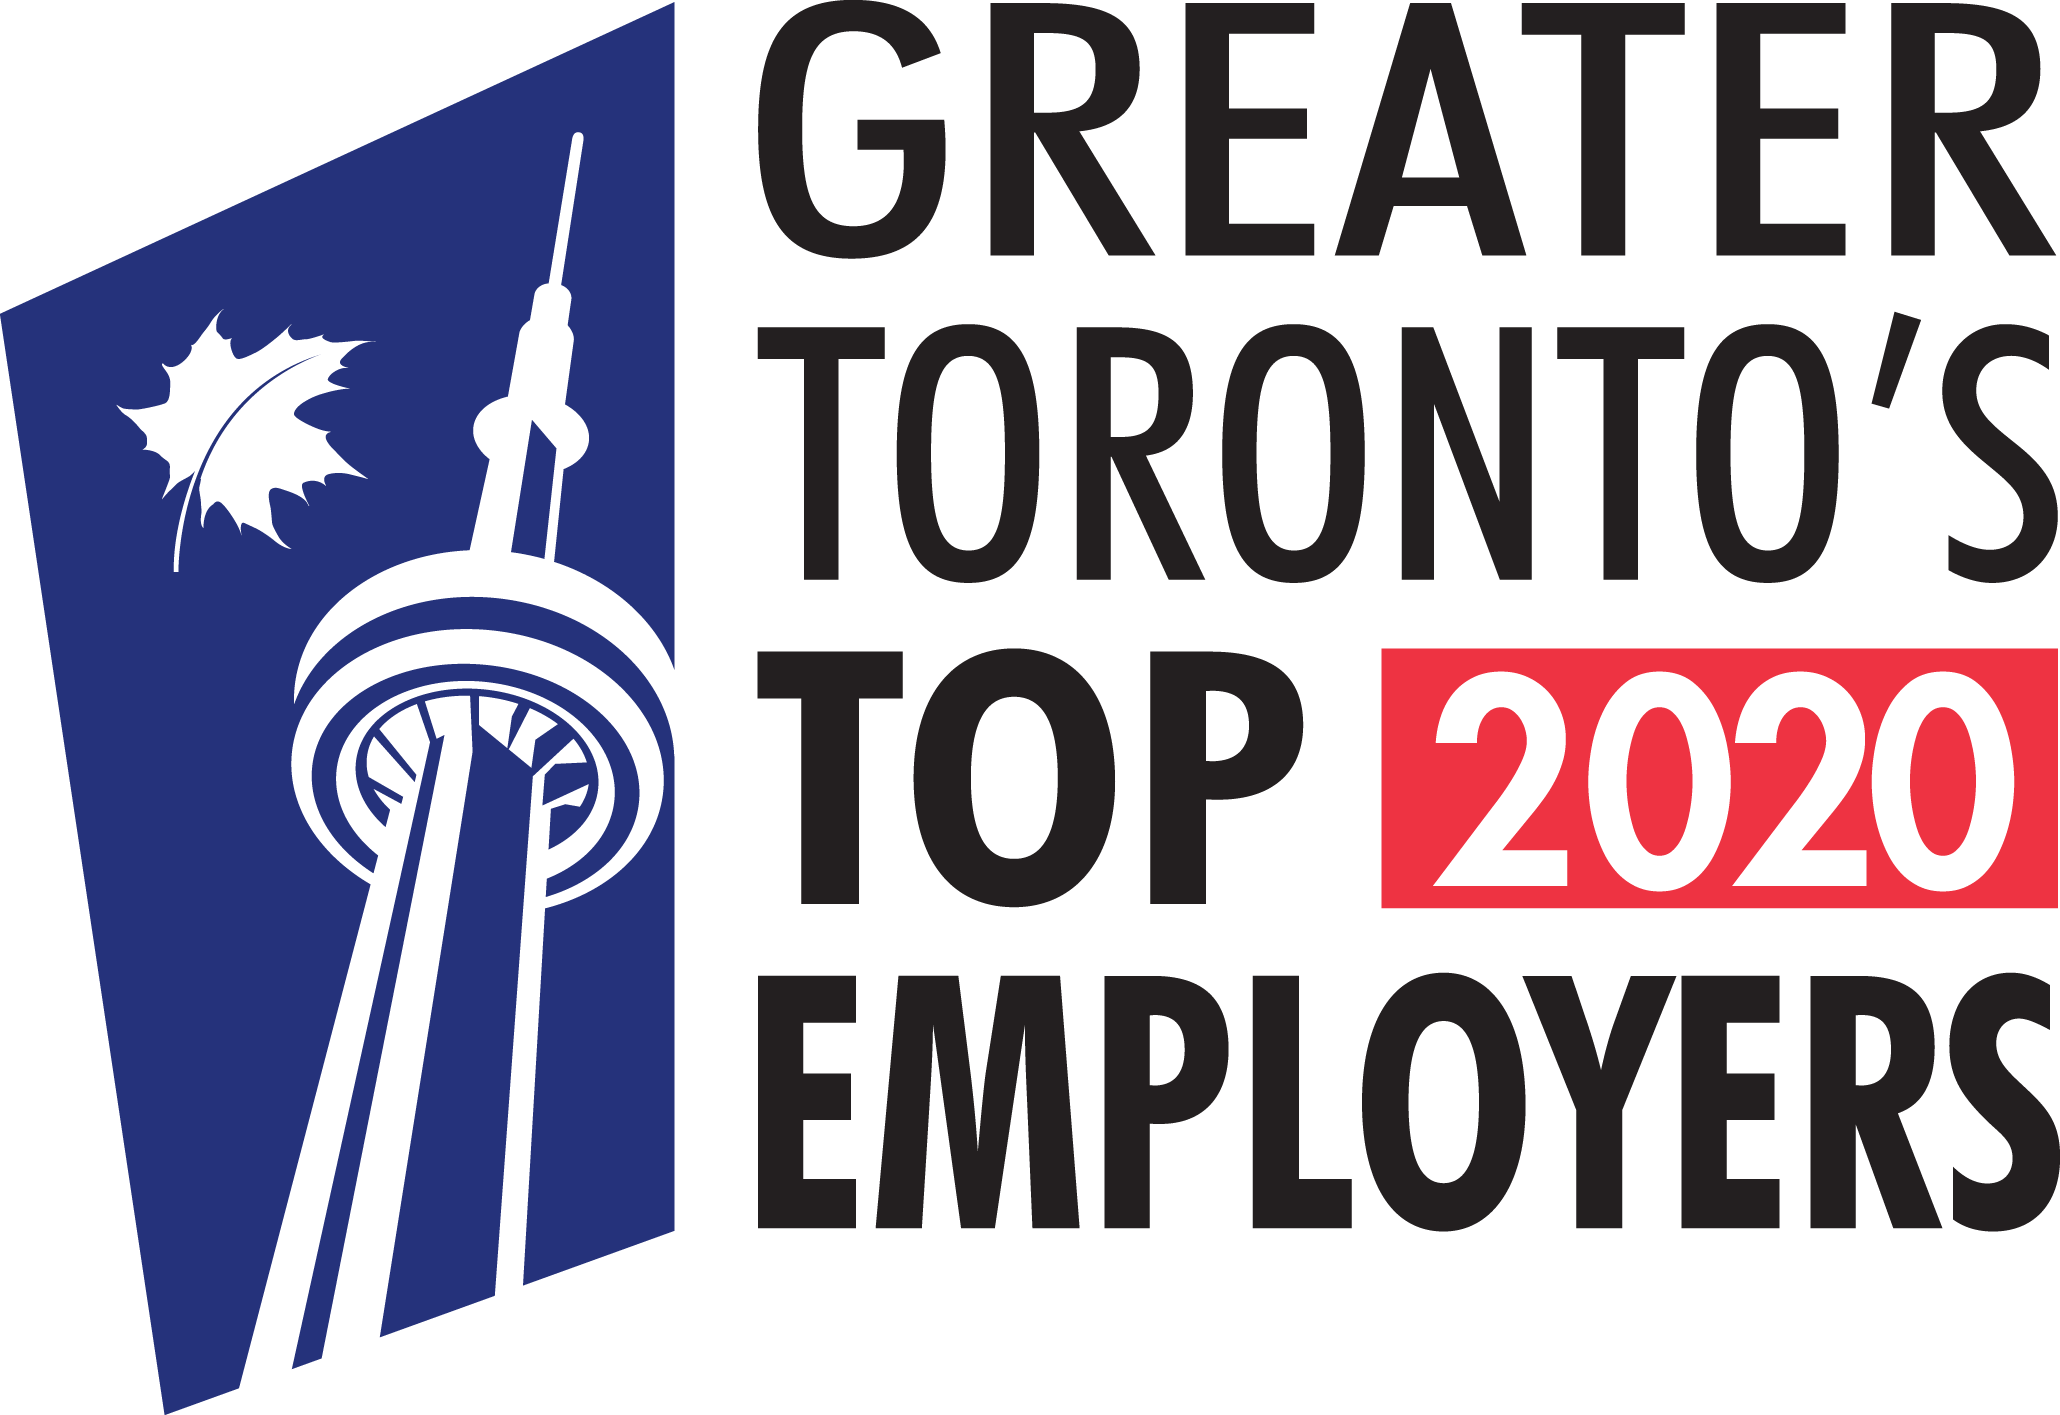 Greater Toronto's Top Employers Badge